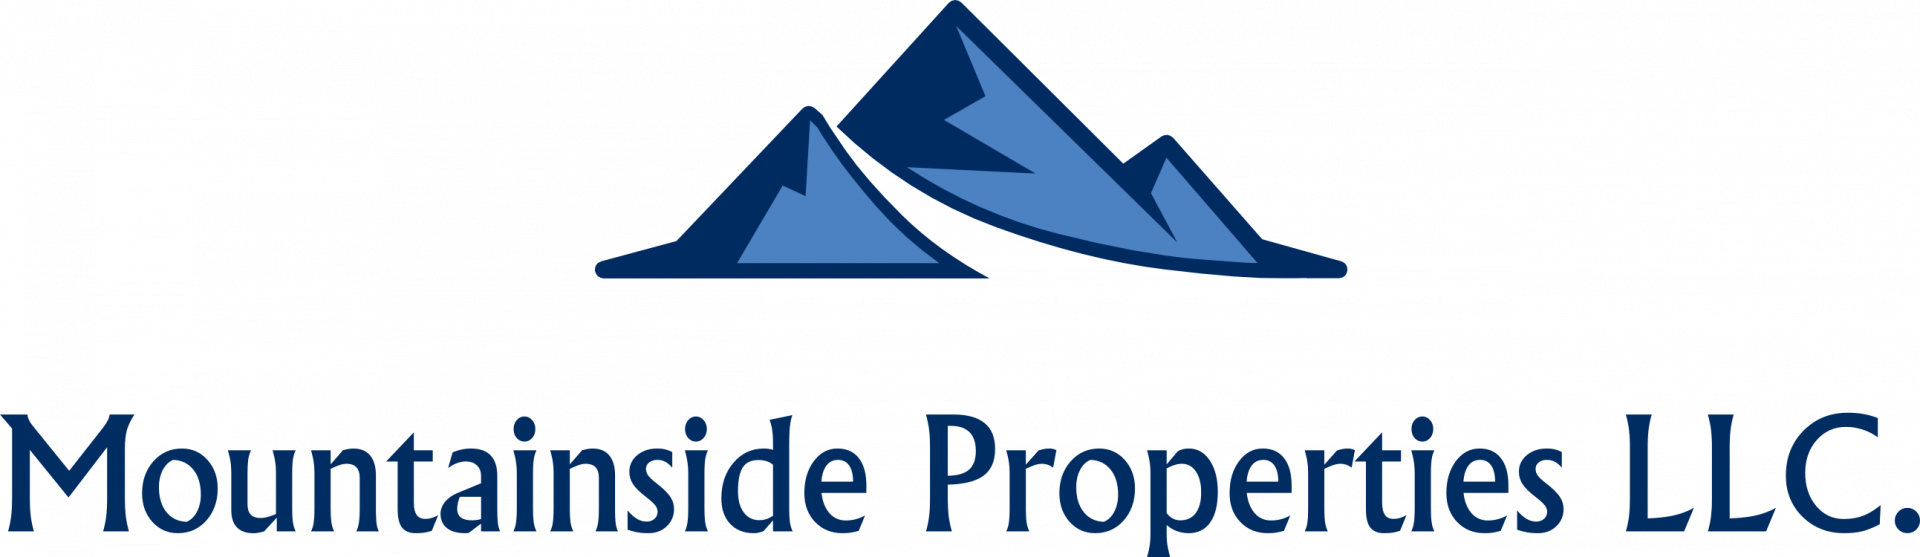 Mountainside Properties LLC  logo